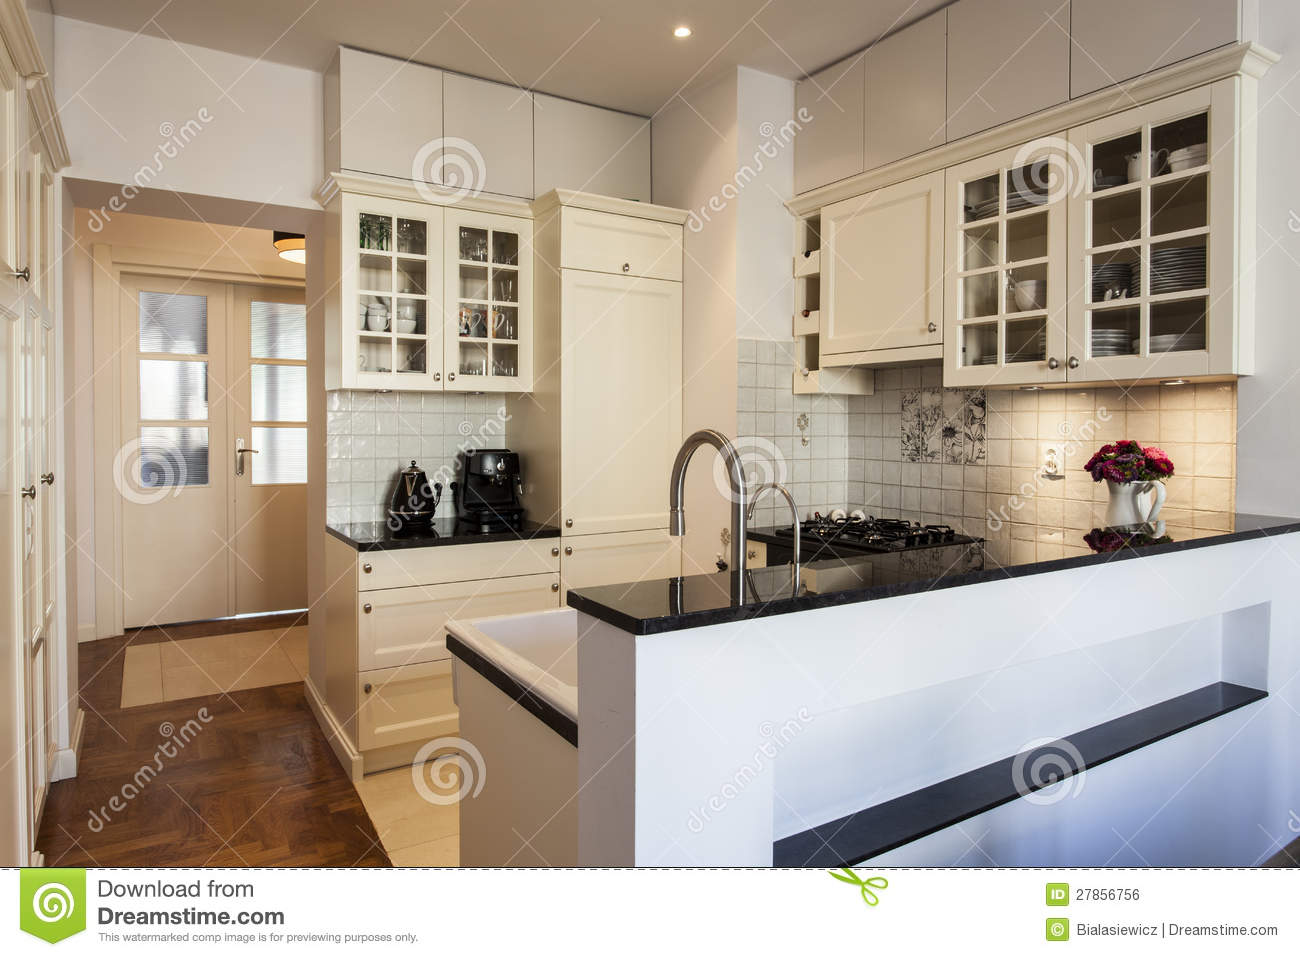 Kitchen In White And Ecru Royalty Free Stock Image  Image